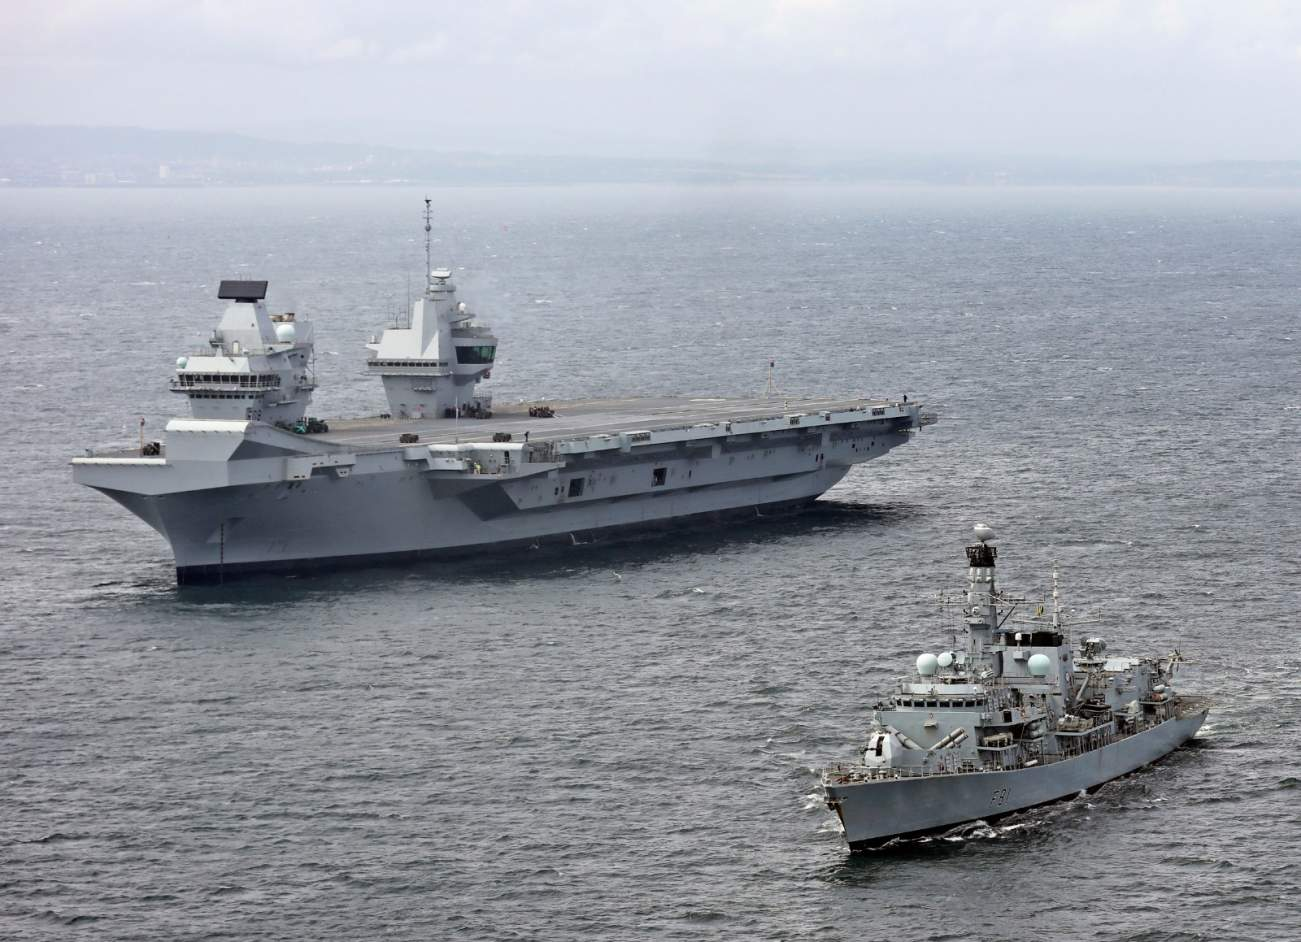 The Royal Navy Has A Crazy New Idea To Build Aircraft Carriers In A Hurry